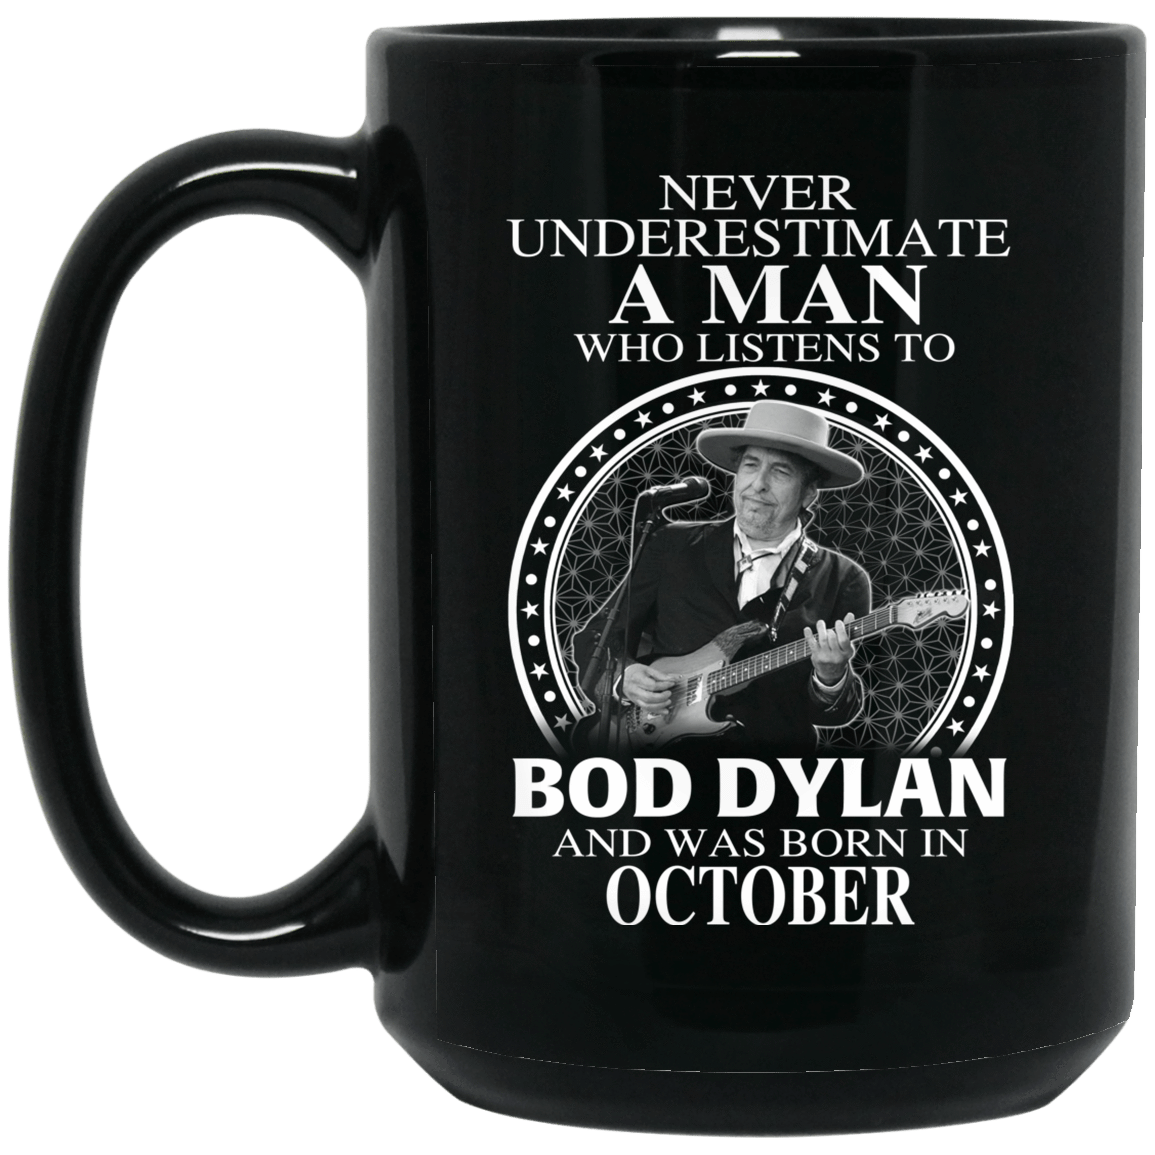 A Man Who Listens To Bob Dylan And Was Born In October Mug 1066-10182-76154686-49311 - Tee Ript